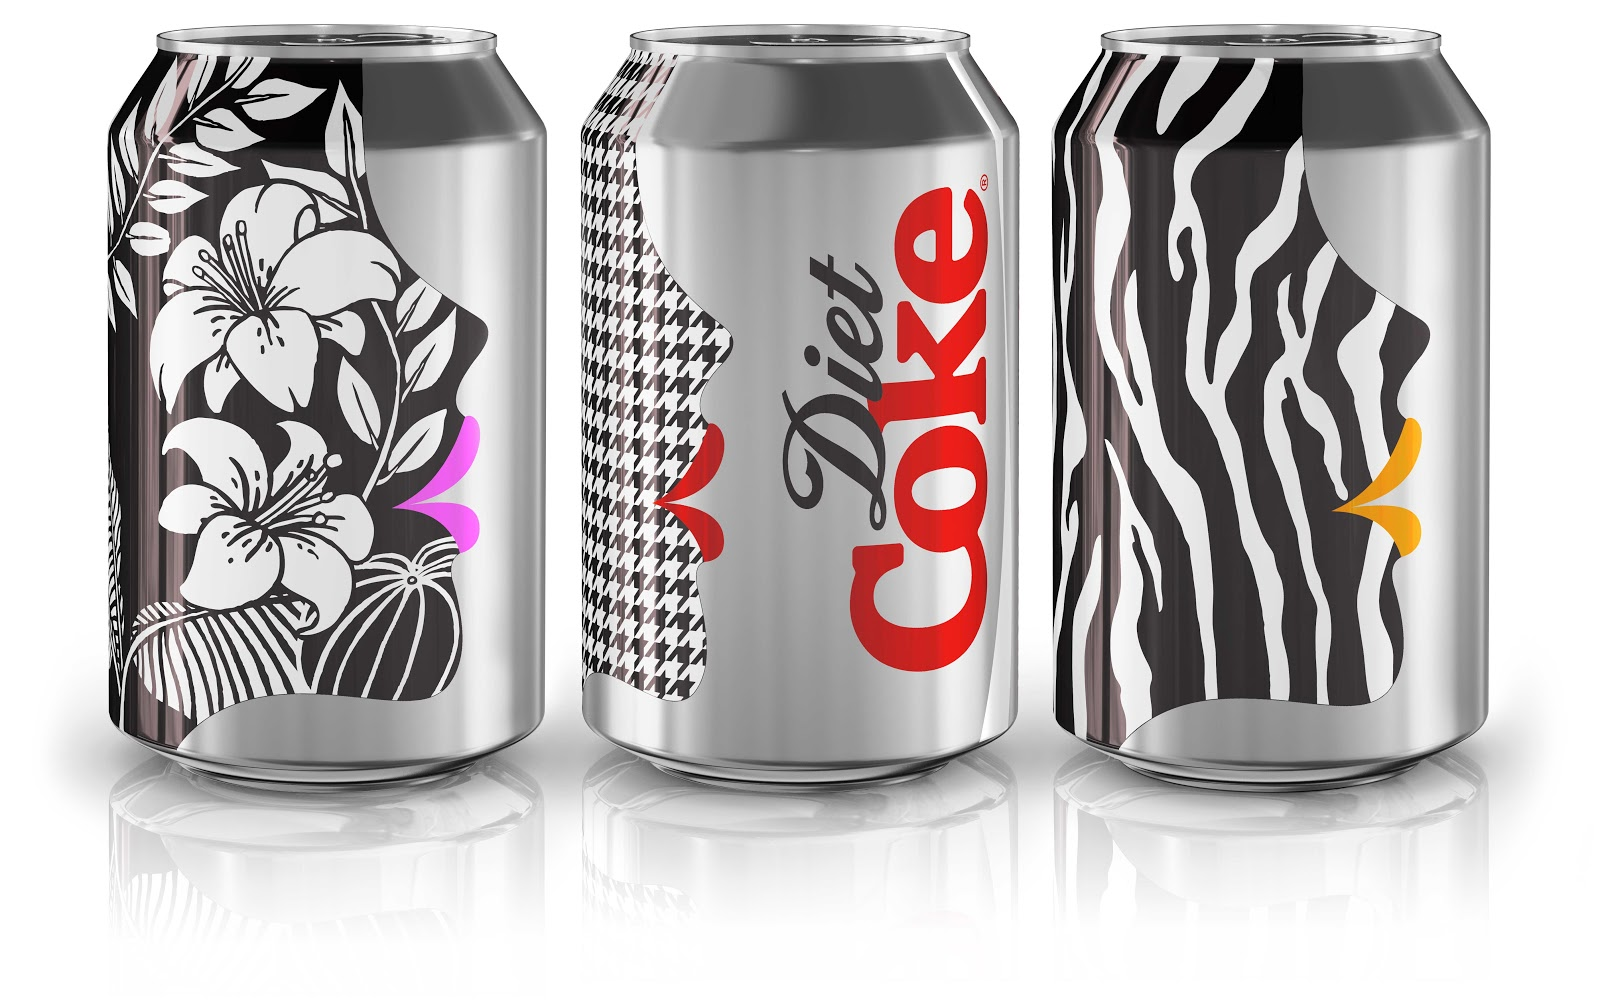 Diet Coke Can 2013 This effectively taps into the